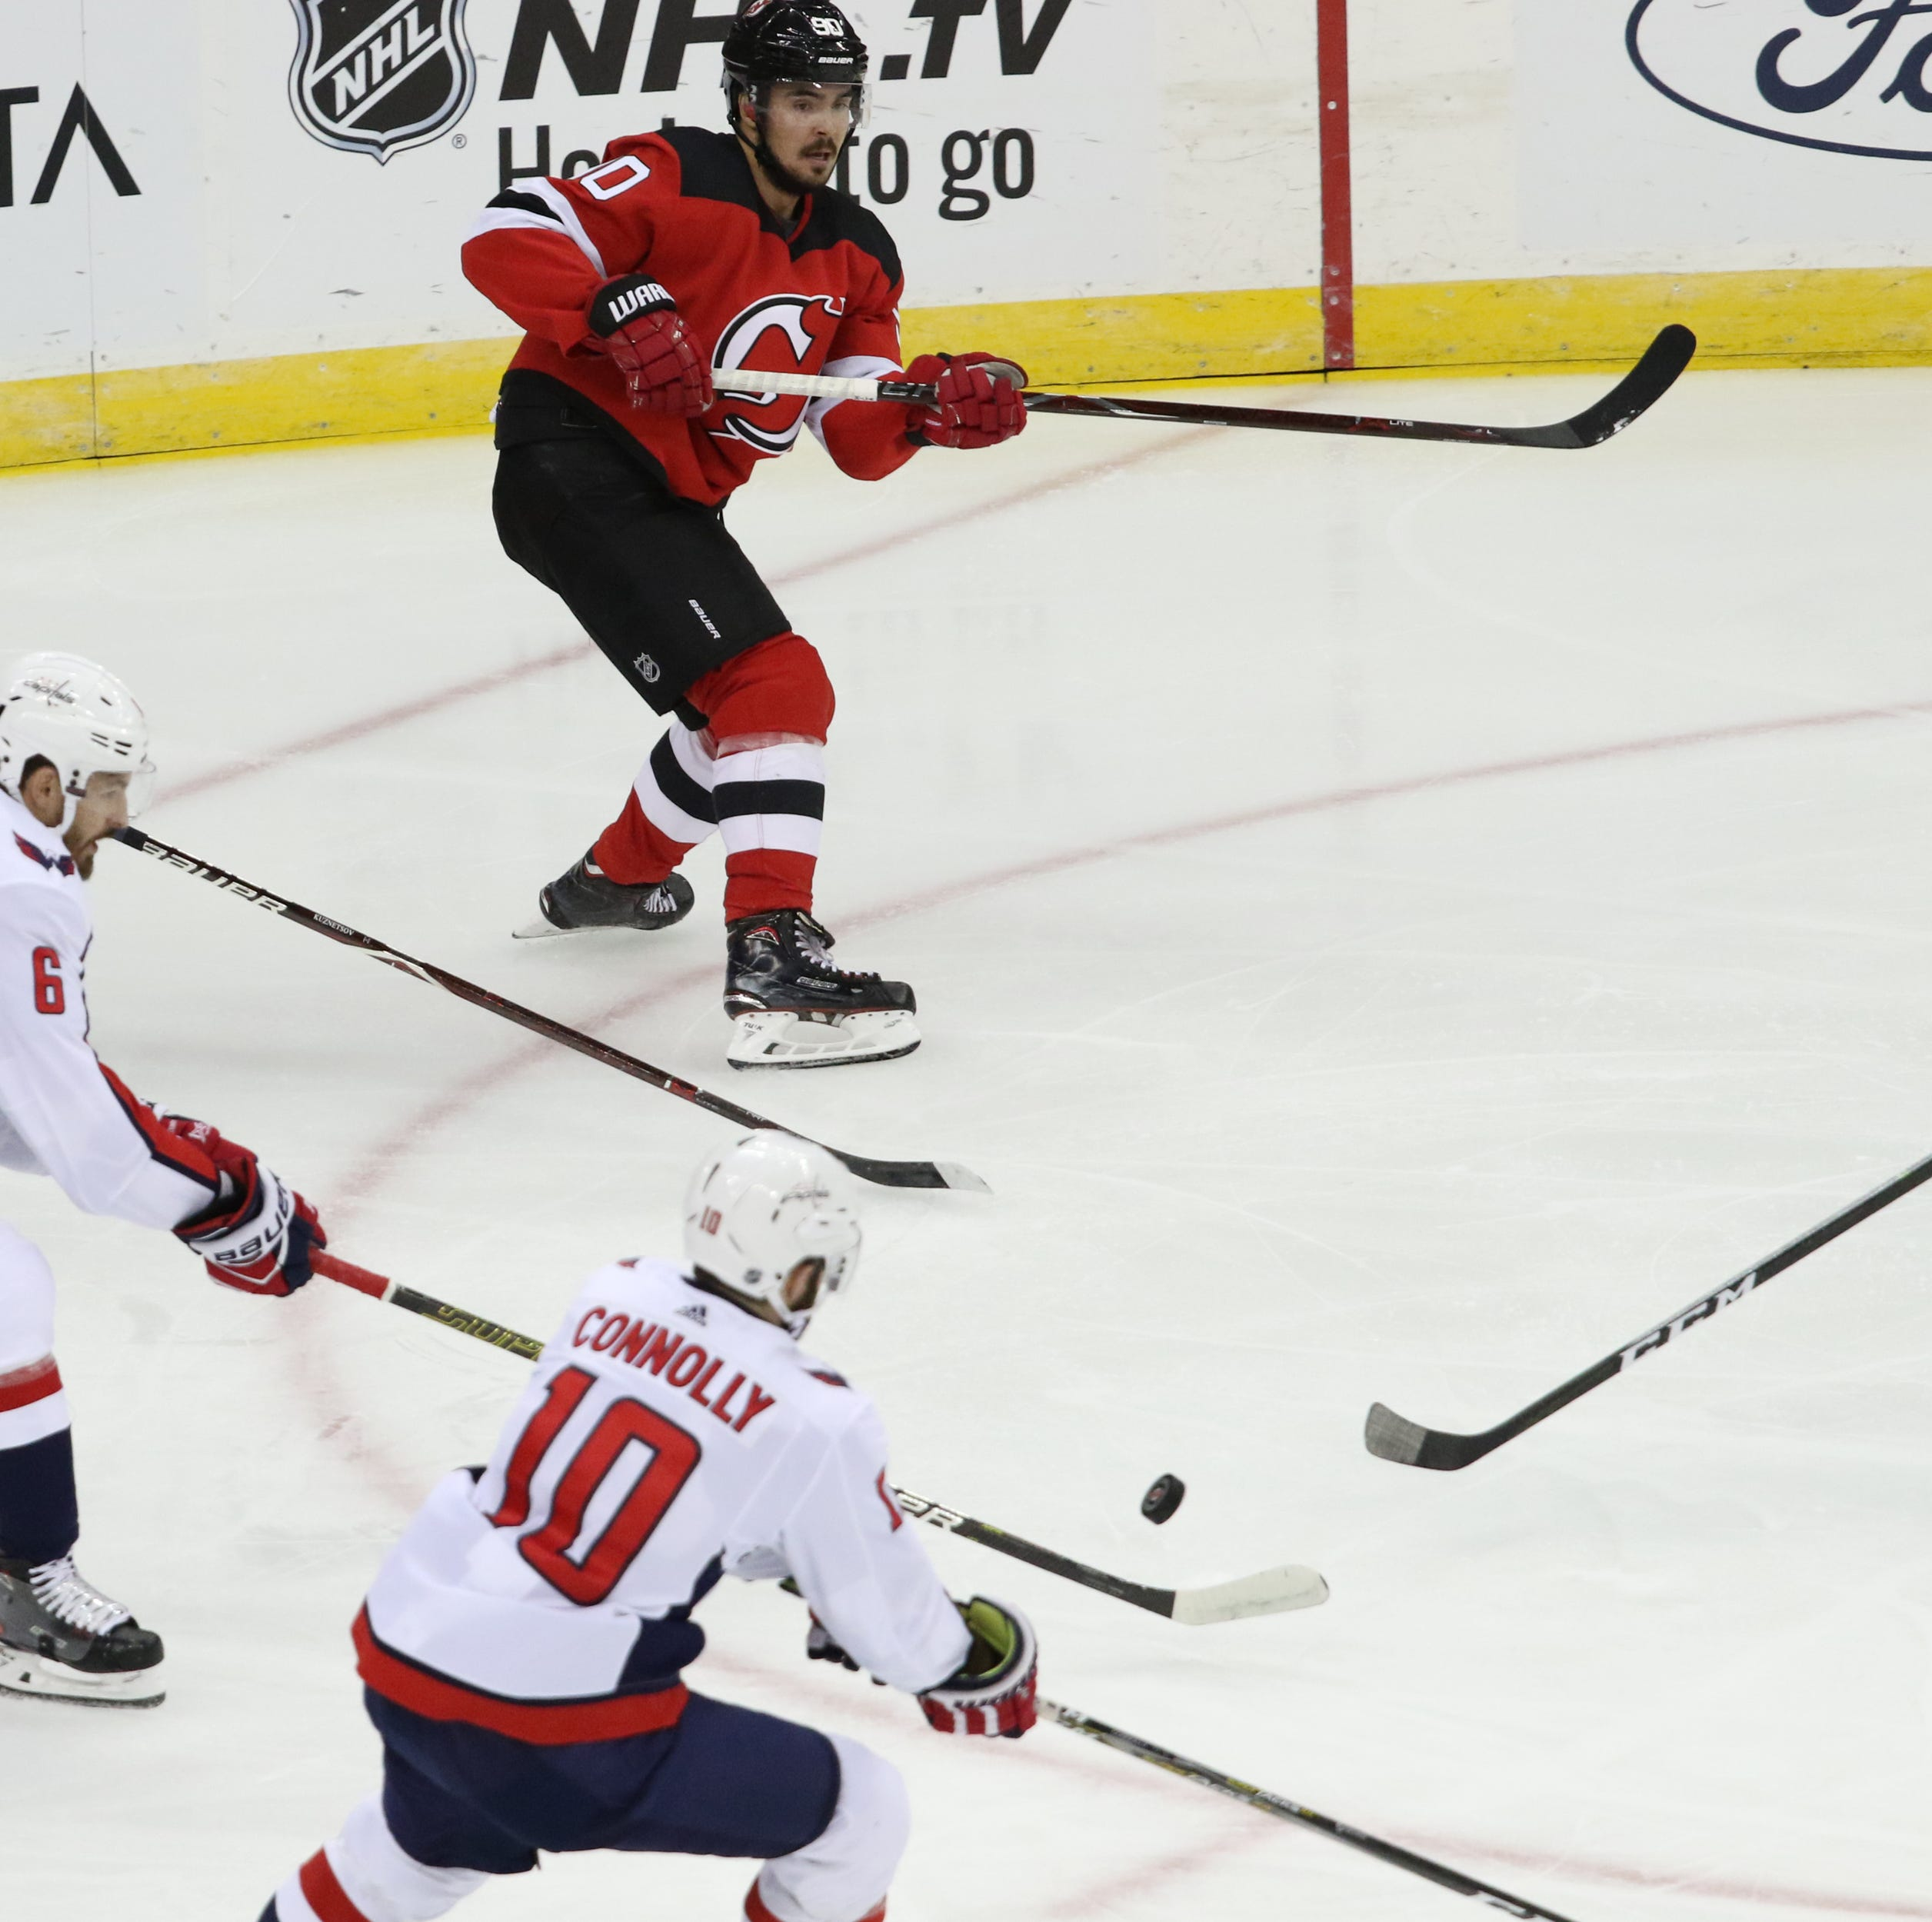 Power play changes ahead for NJ Devils?